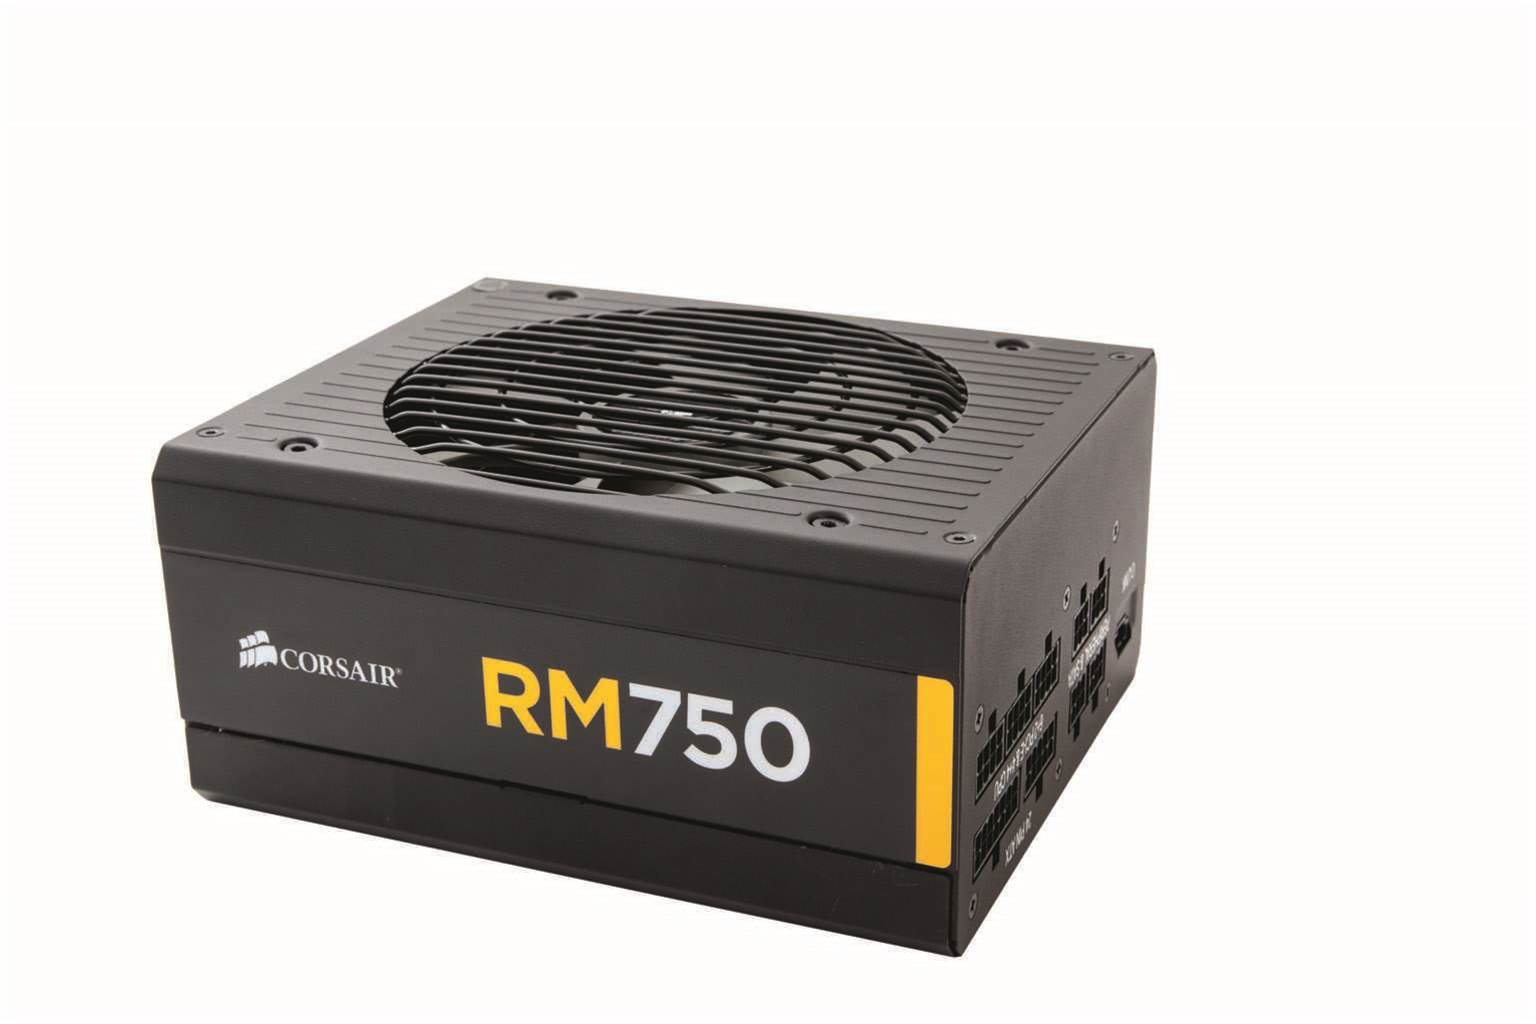 Labs Brief: Corsair RM750